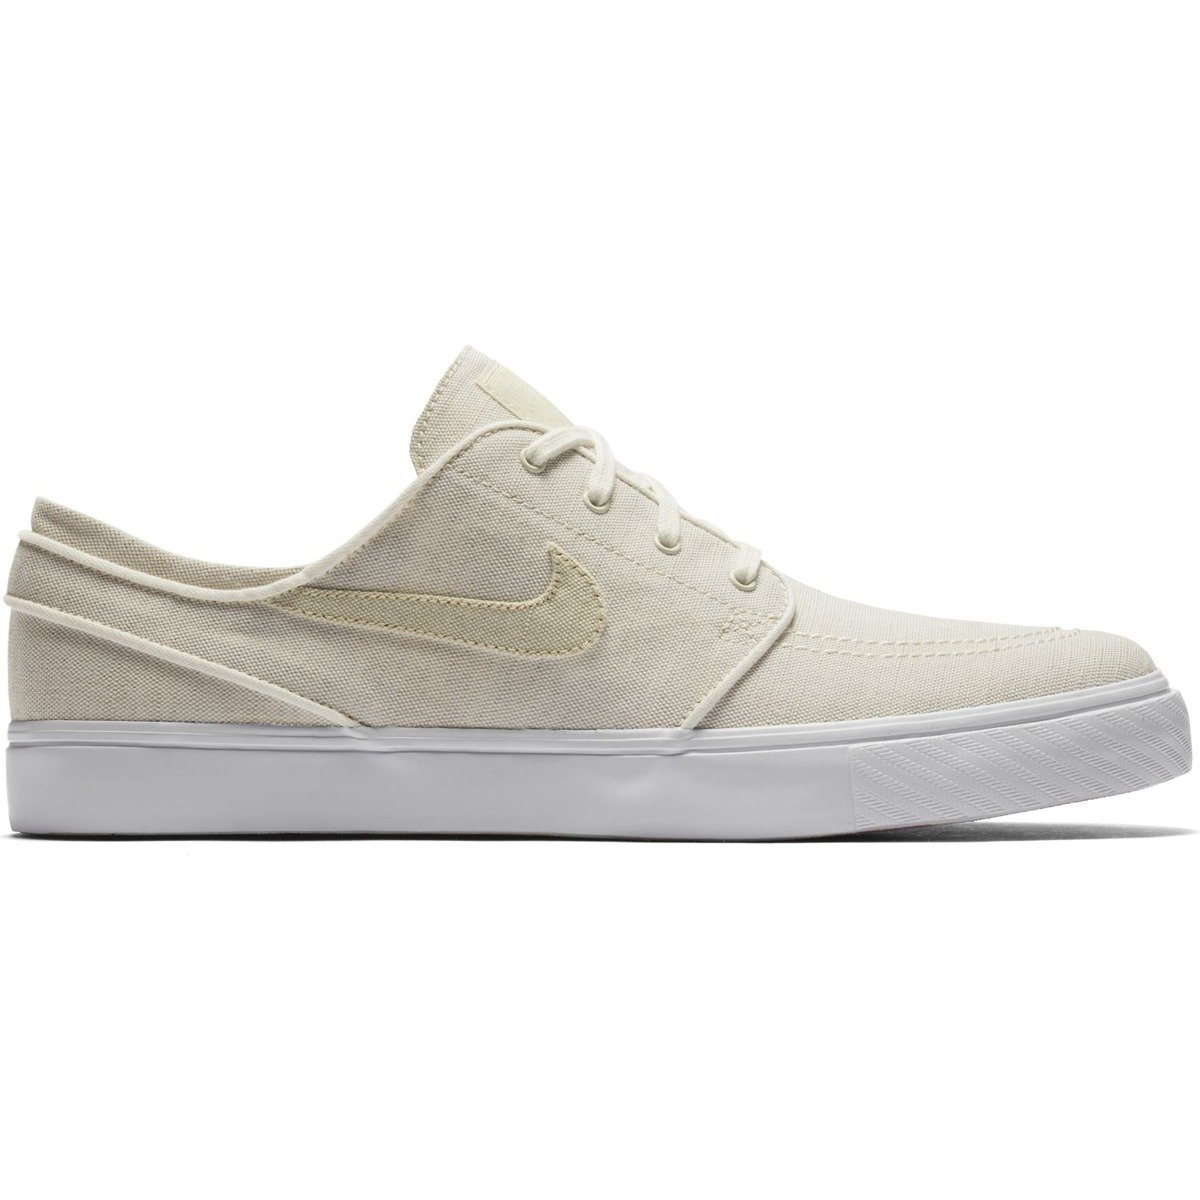 3dccf8858ea Nike SB. AH6417-100. janoski canvas deconstructed sail fossil-vintage  coral-laser orange Click to zoom ...